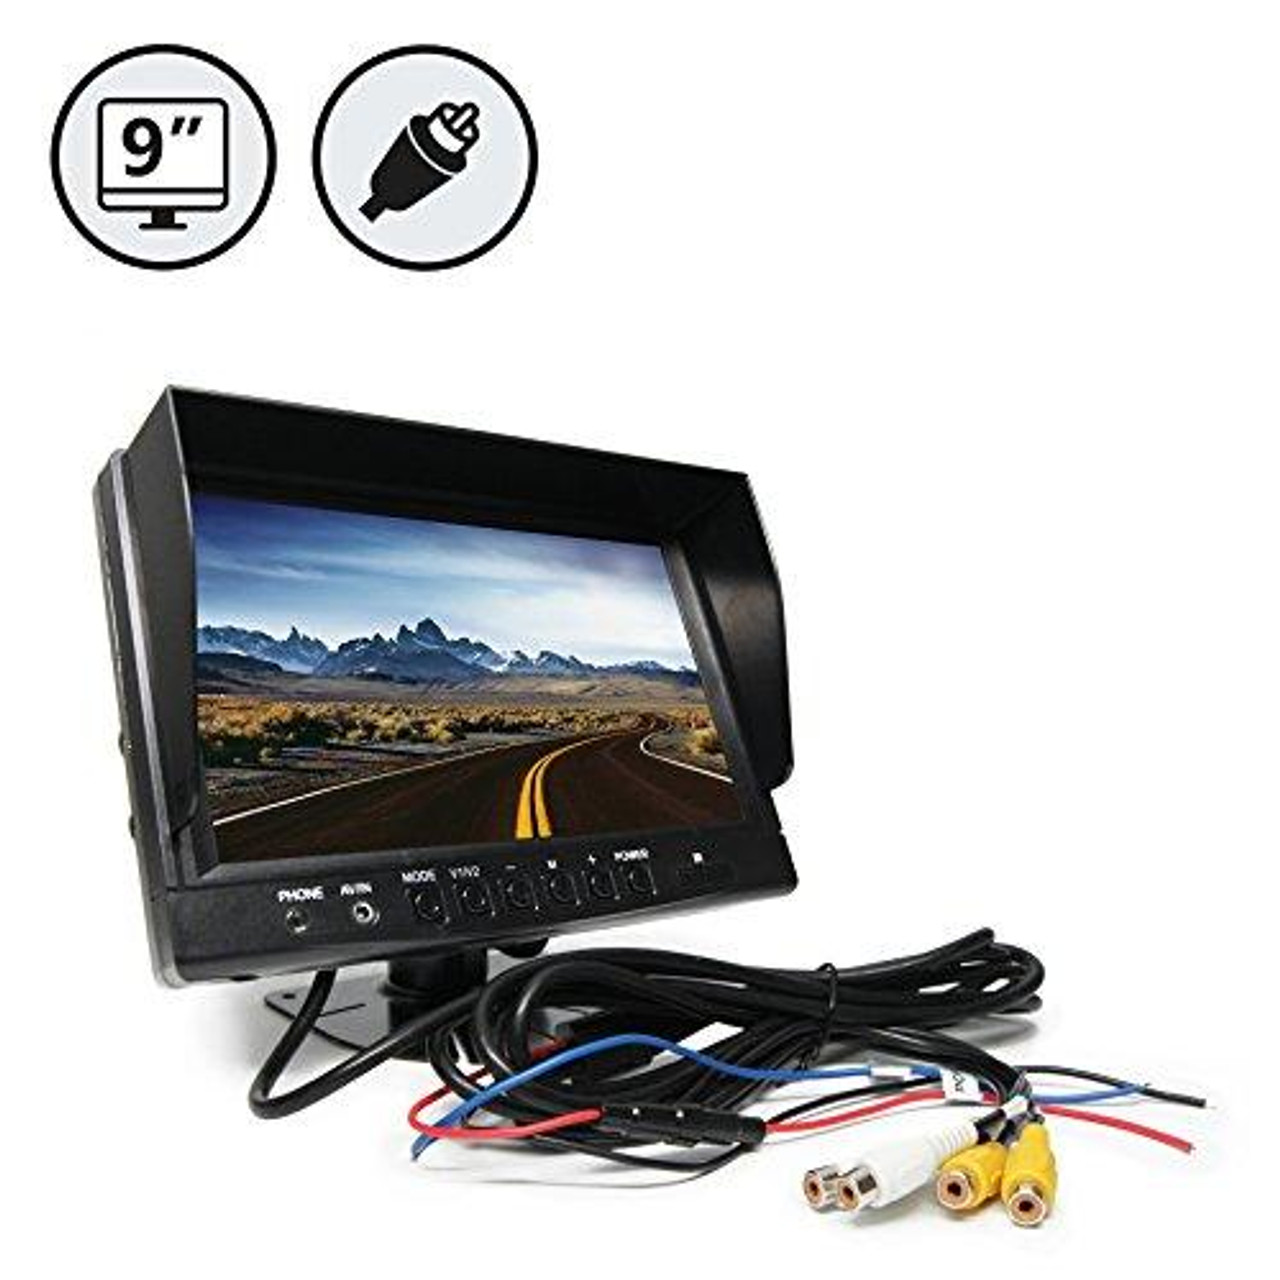 "9"" LED Digital Color Rear View Monitor with RCA Connections"